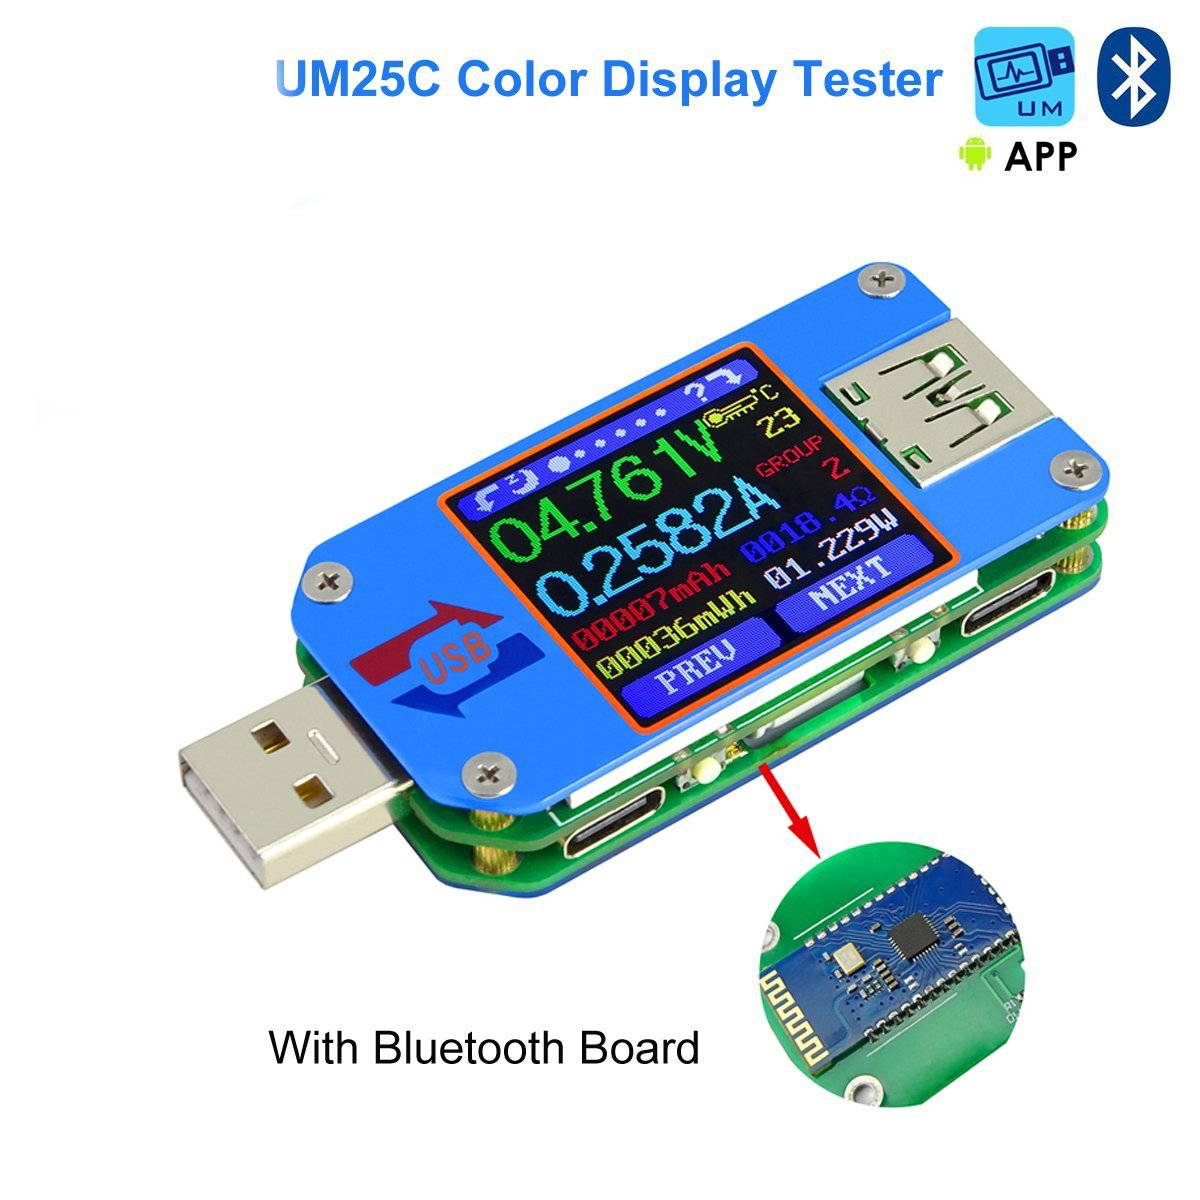 UM25C USB Meter Tester Voltage Current Bluetooth Battery Power Charger Voltmeter Ammeter Multimeter Tester, 1.44 Inch Color LCD Display USB 2.0 Type- C Cable Resistance Load Impedance Meter by Flight-sky (Image #1)